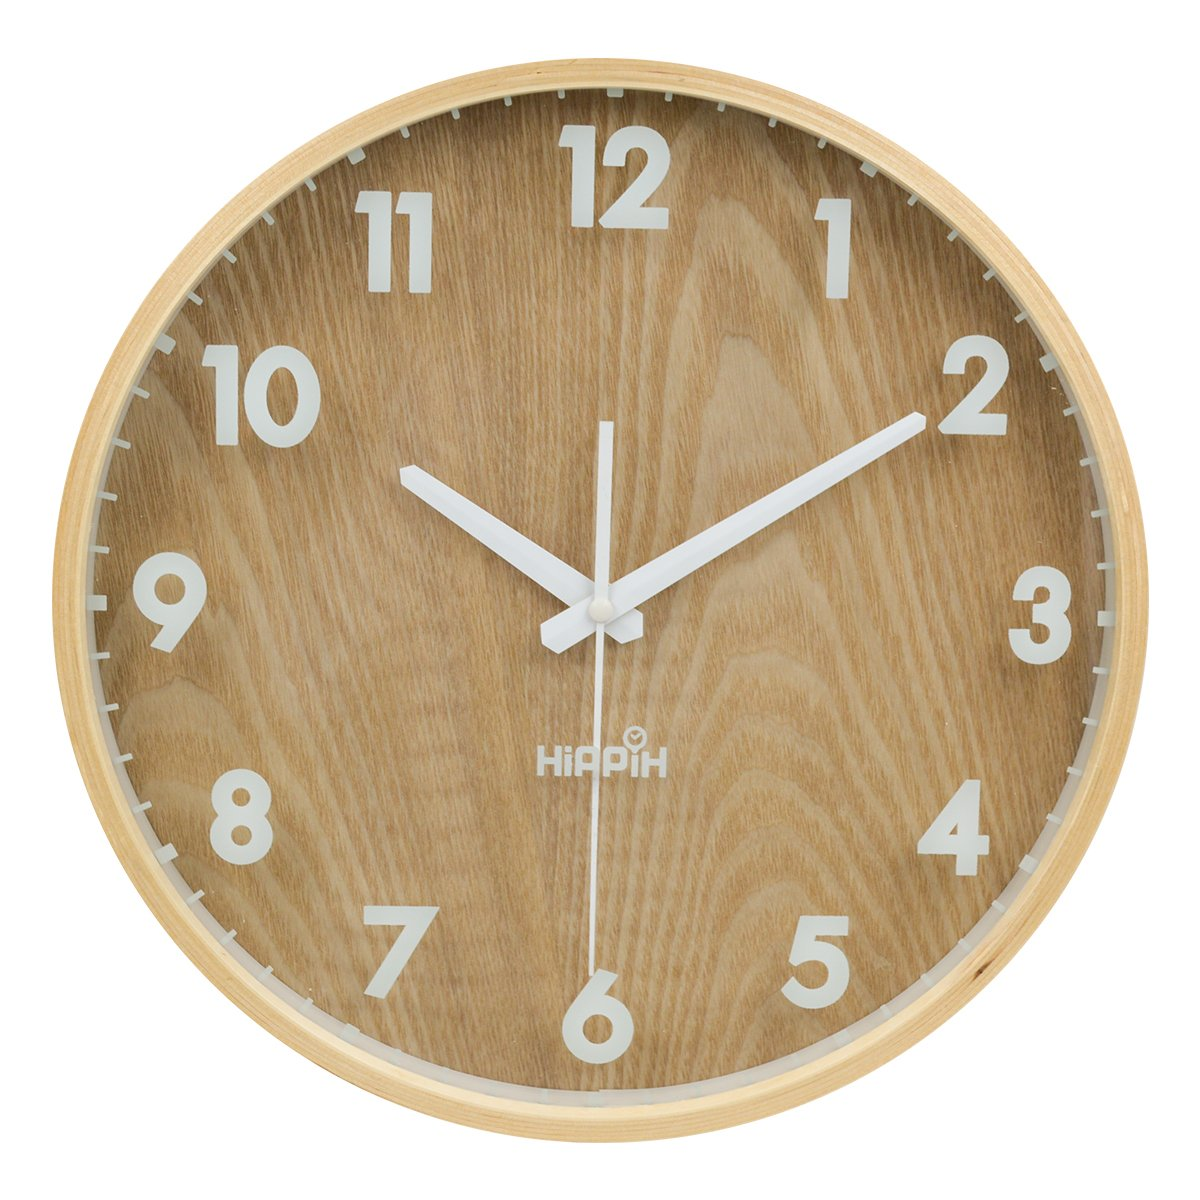 HIPPIH 12'' Silent Wall Clock Wood Non Ticking Digital Quiet Sweep Home Decor Vintage Wooden Clocks(number)